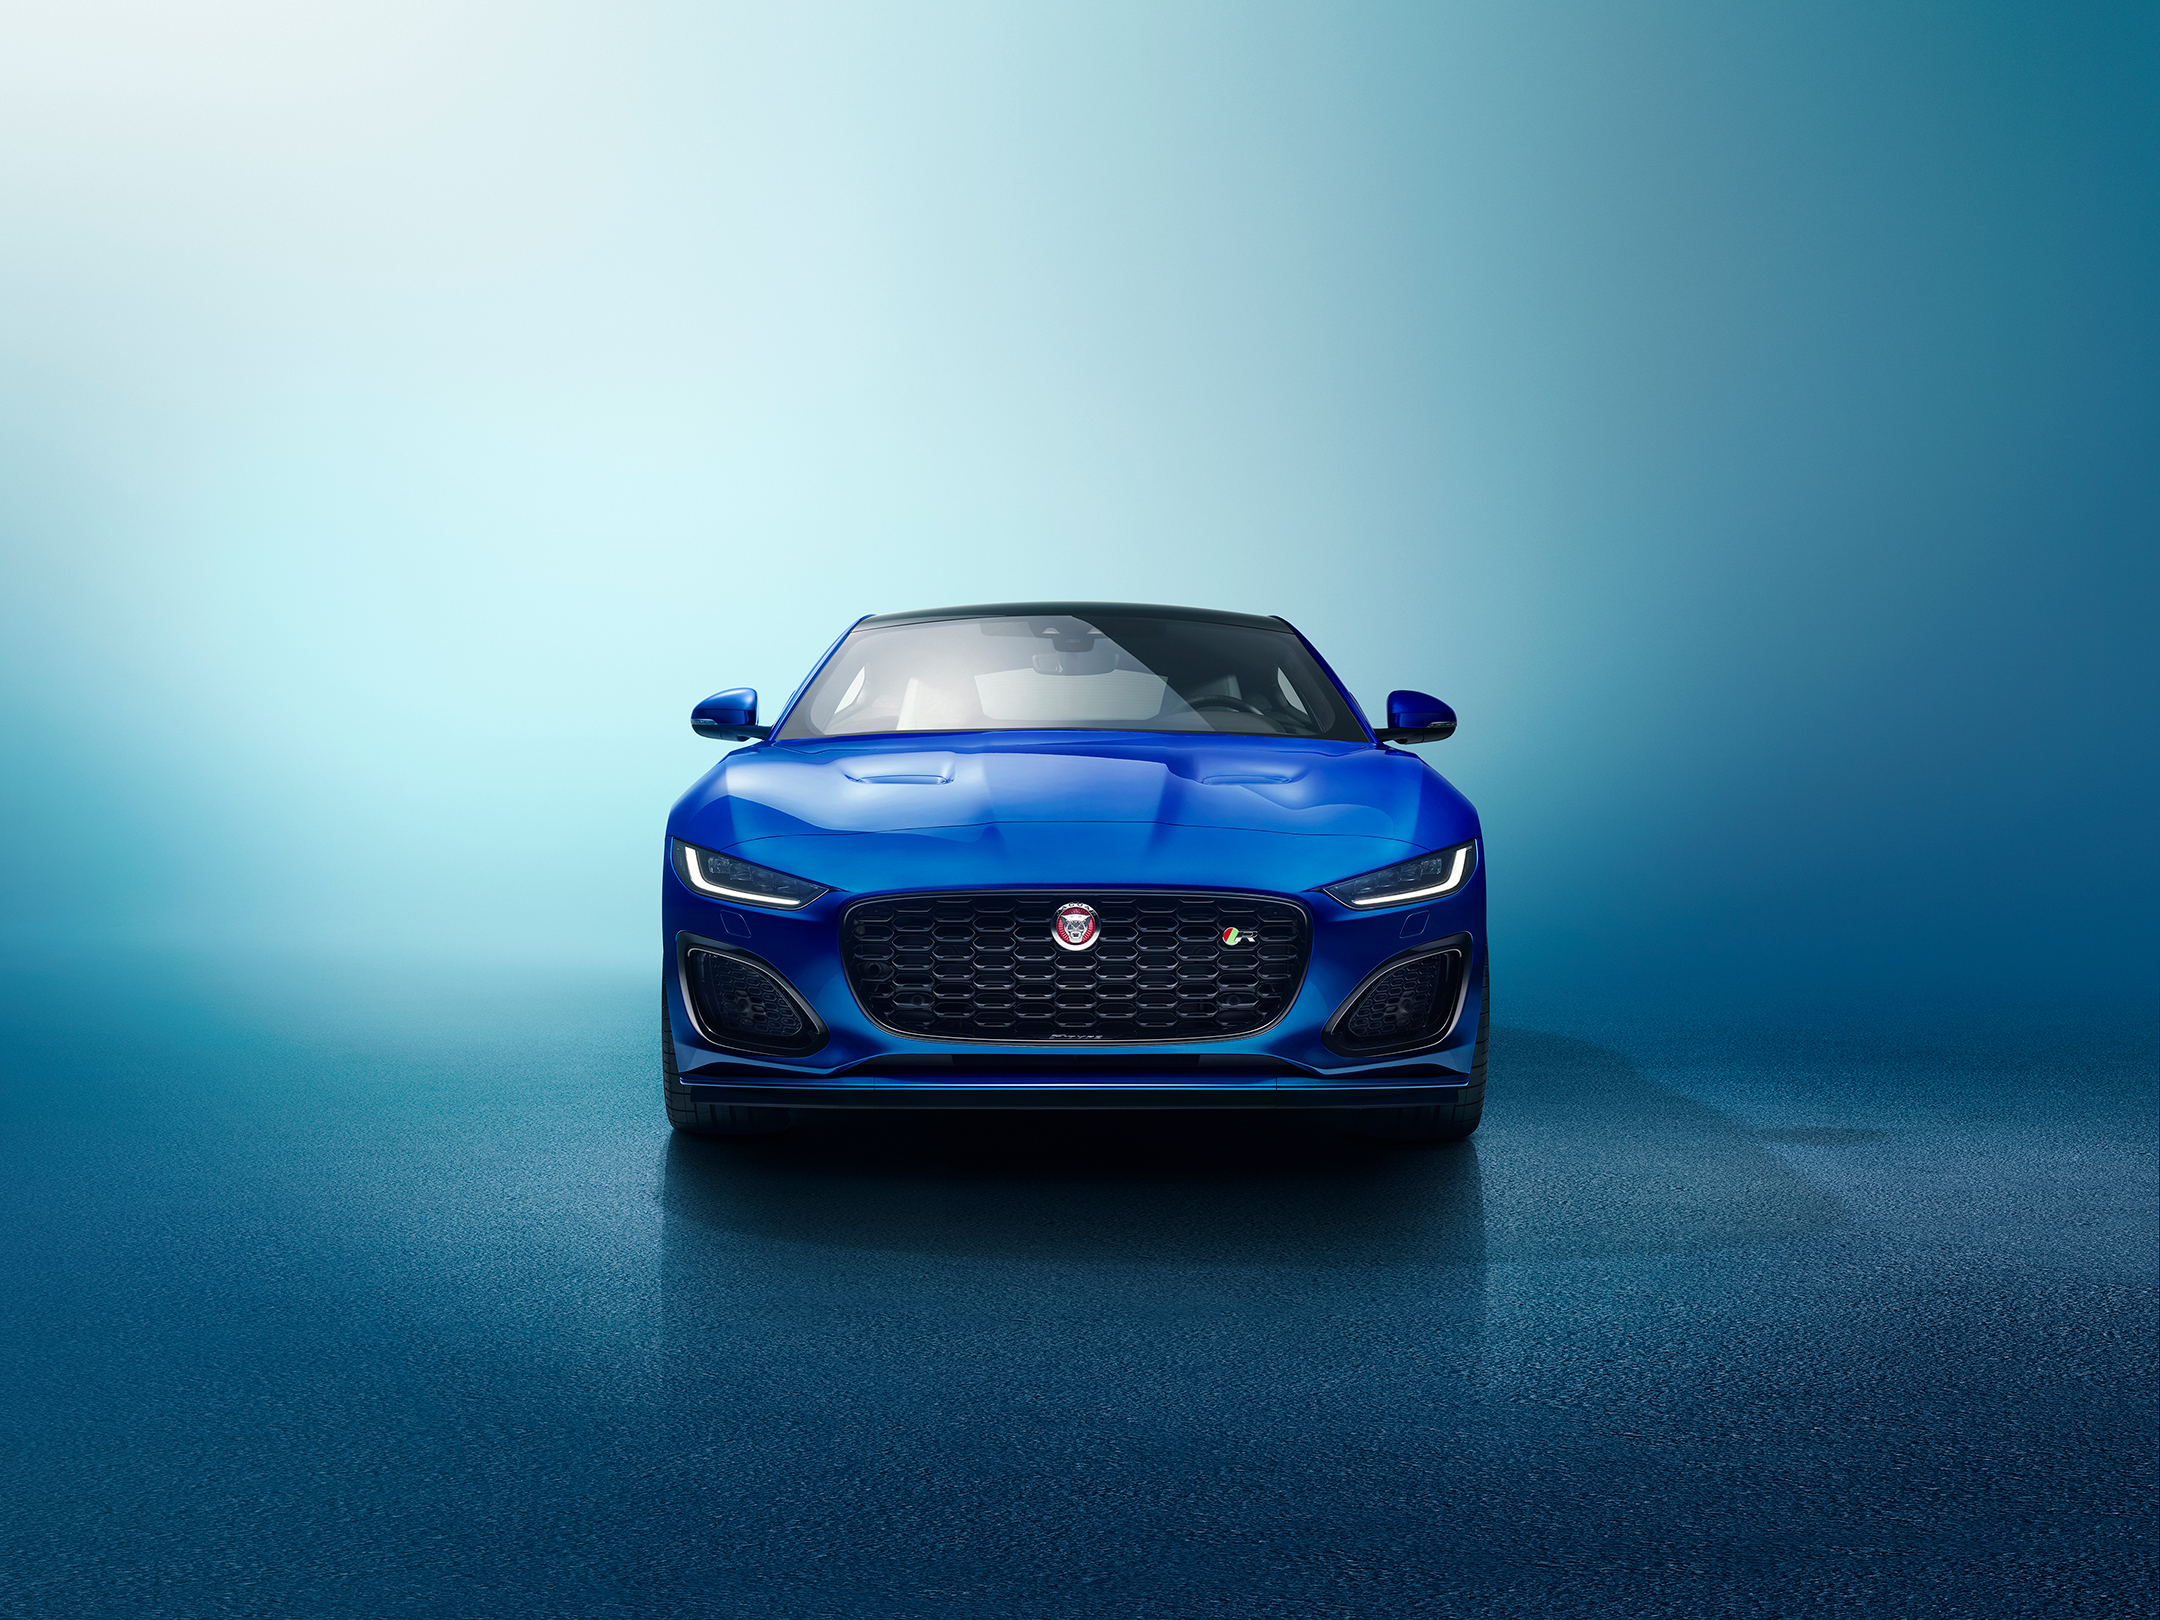 Jaguar F-TYPE - 2019 - top view - front face / face avant